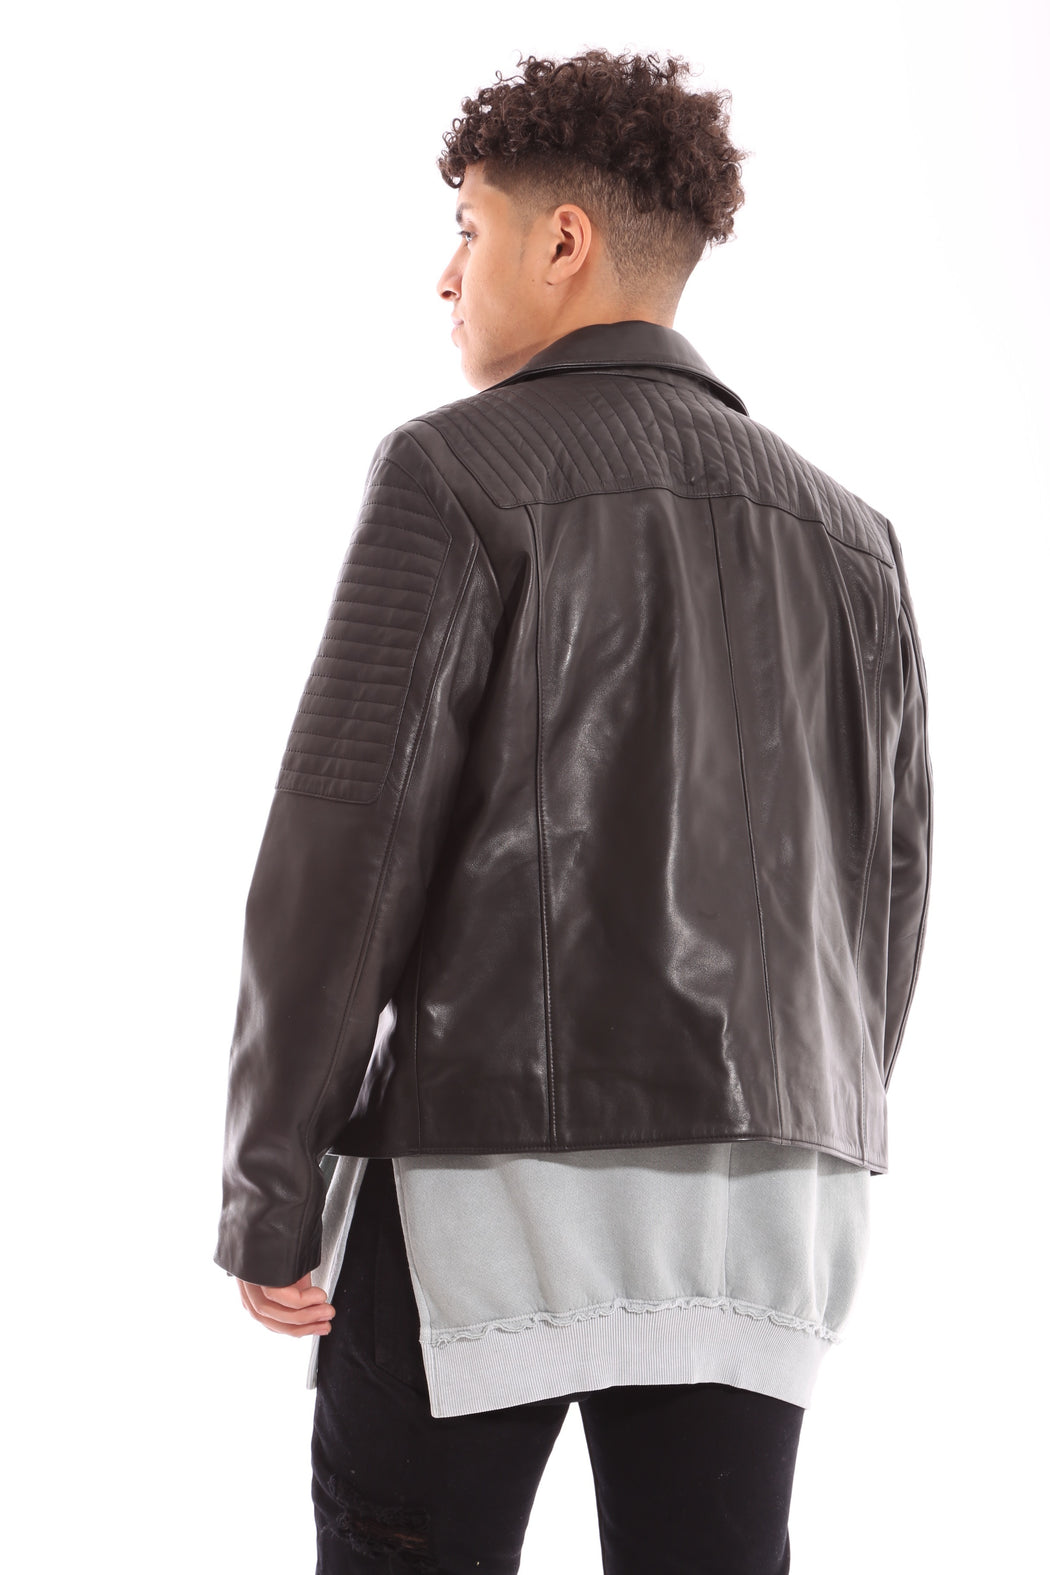 LOST BOYS LEATHER JACKET